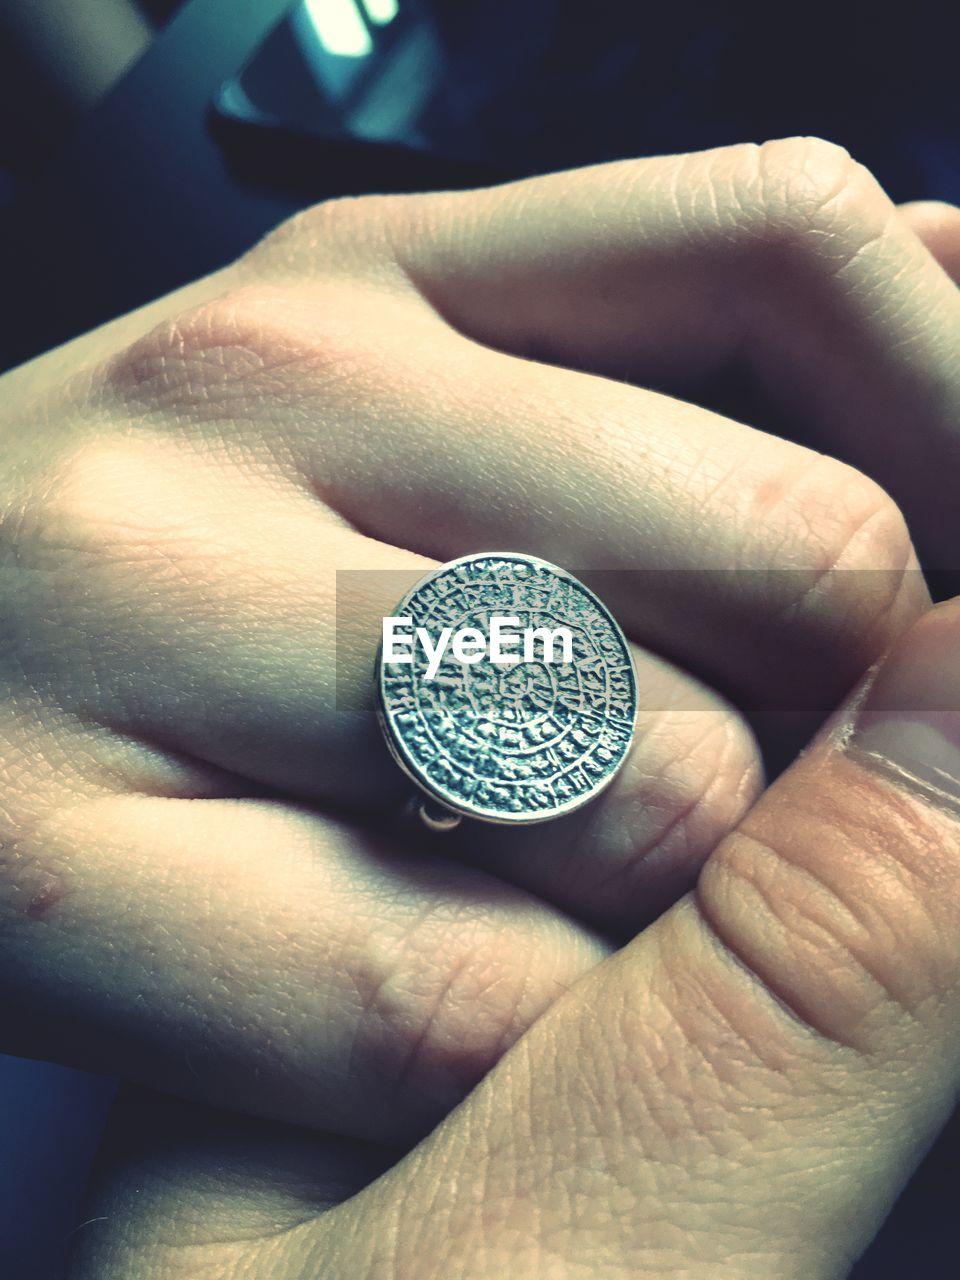 human body part, human hand, hand, finance, real people, one person, close-up, body part, holding, unrecognizable person, currency, coin, finger, high angle view, indoors, human finger, wealth, lifestyles, metal, silver colored